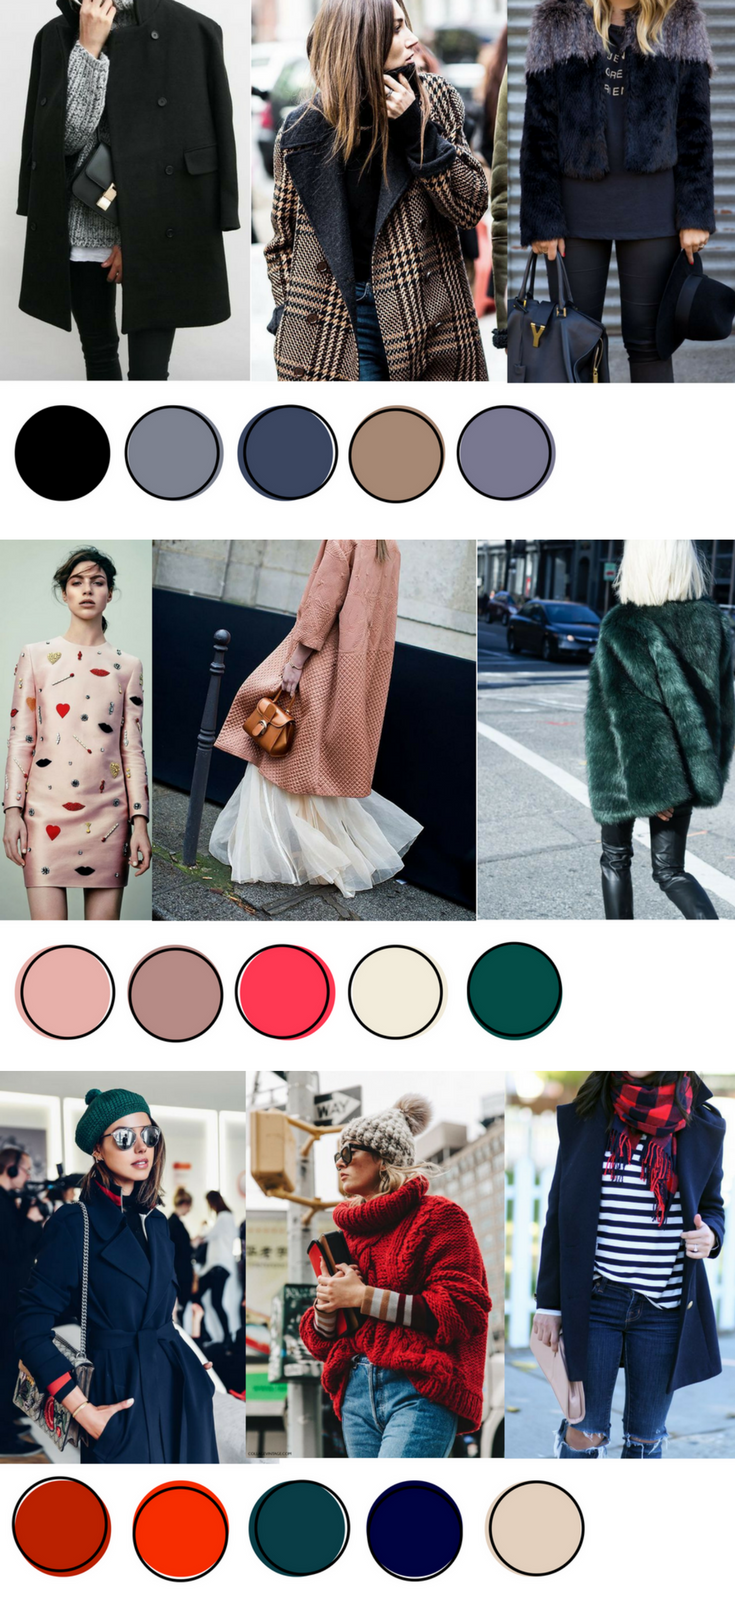 20162017 winter color chart winter colors colour chart and 20162017 winter color chart nvjuhfo Choice Image